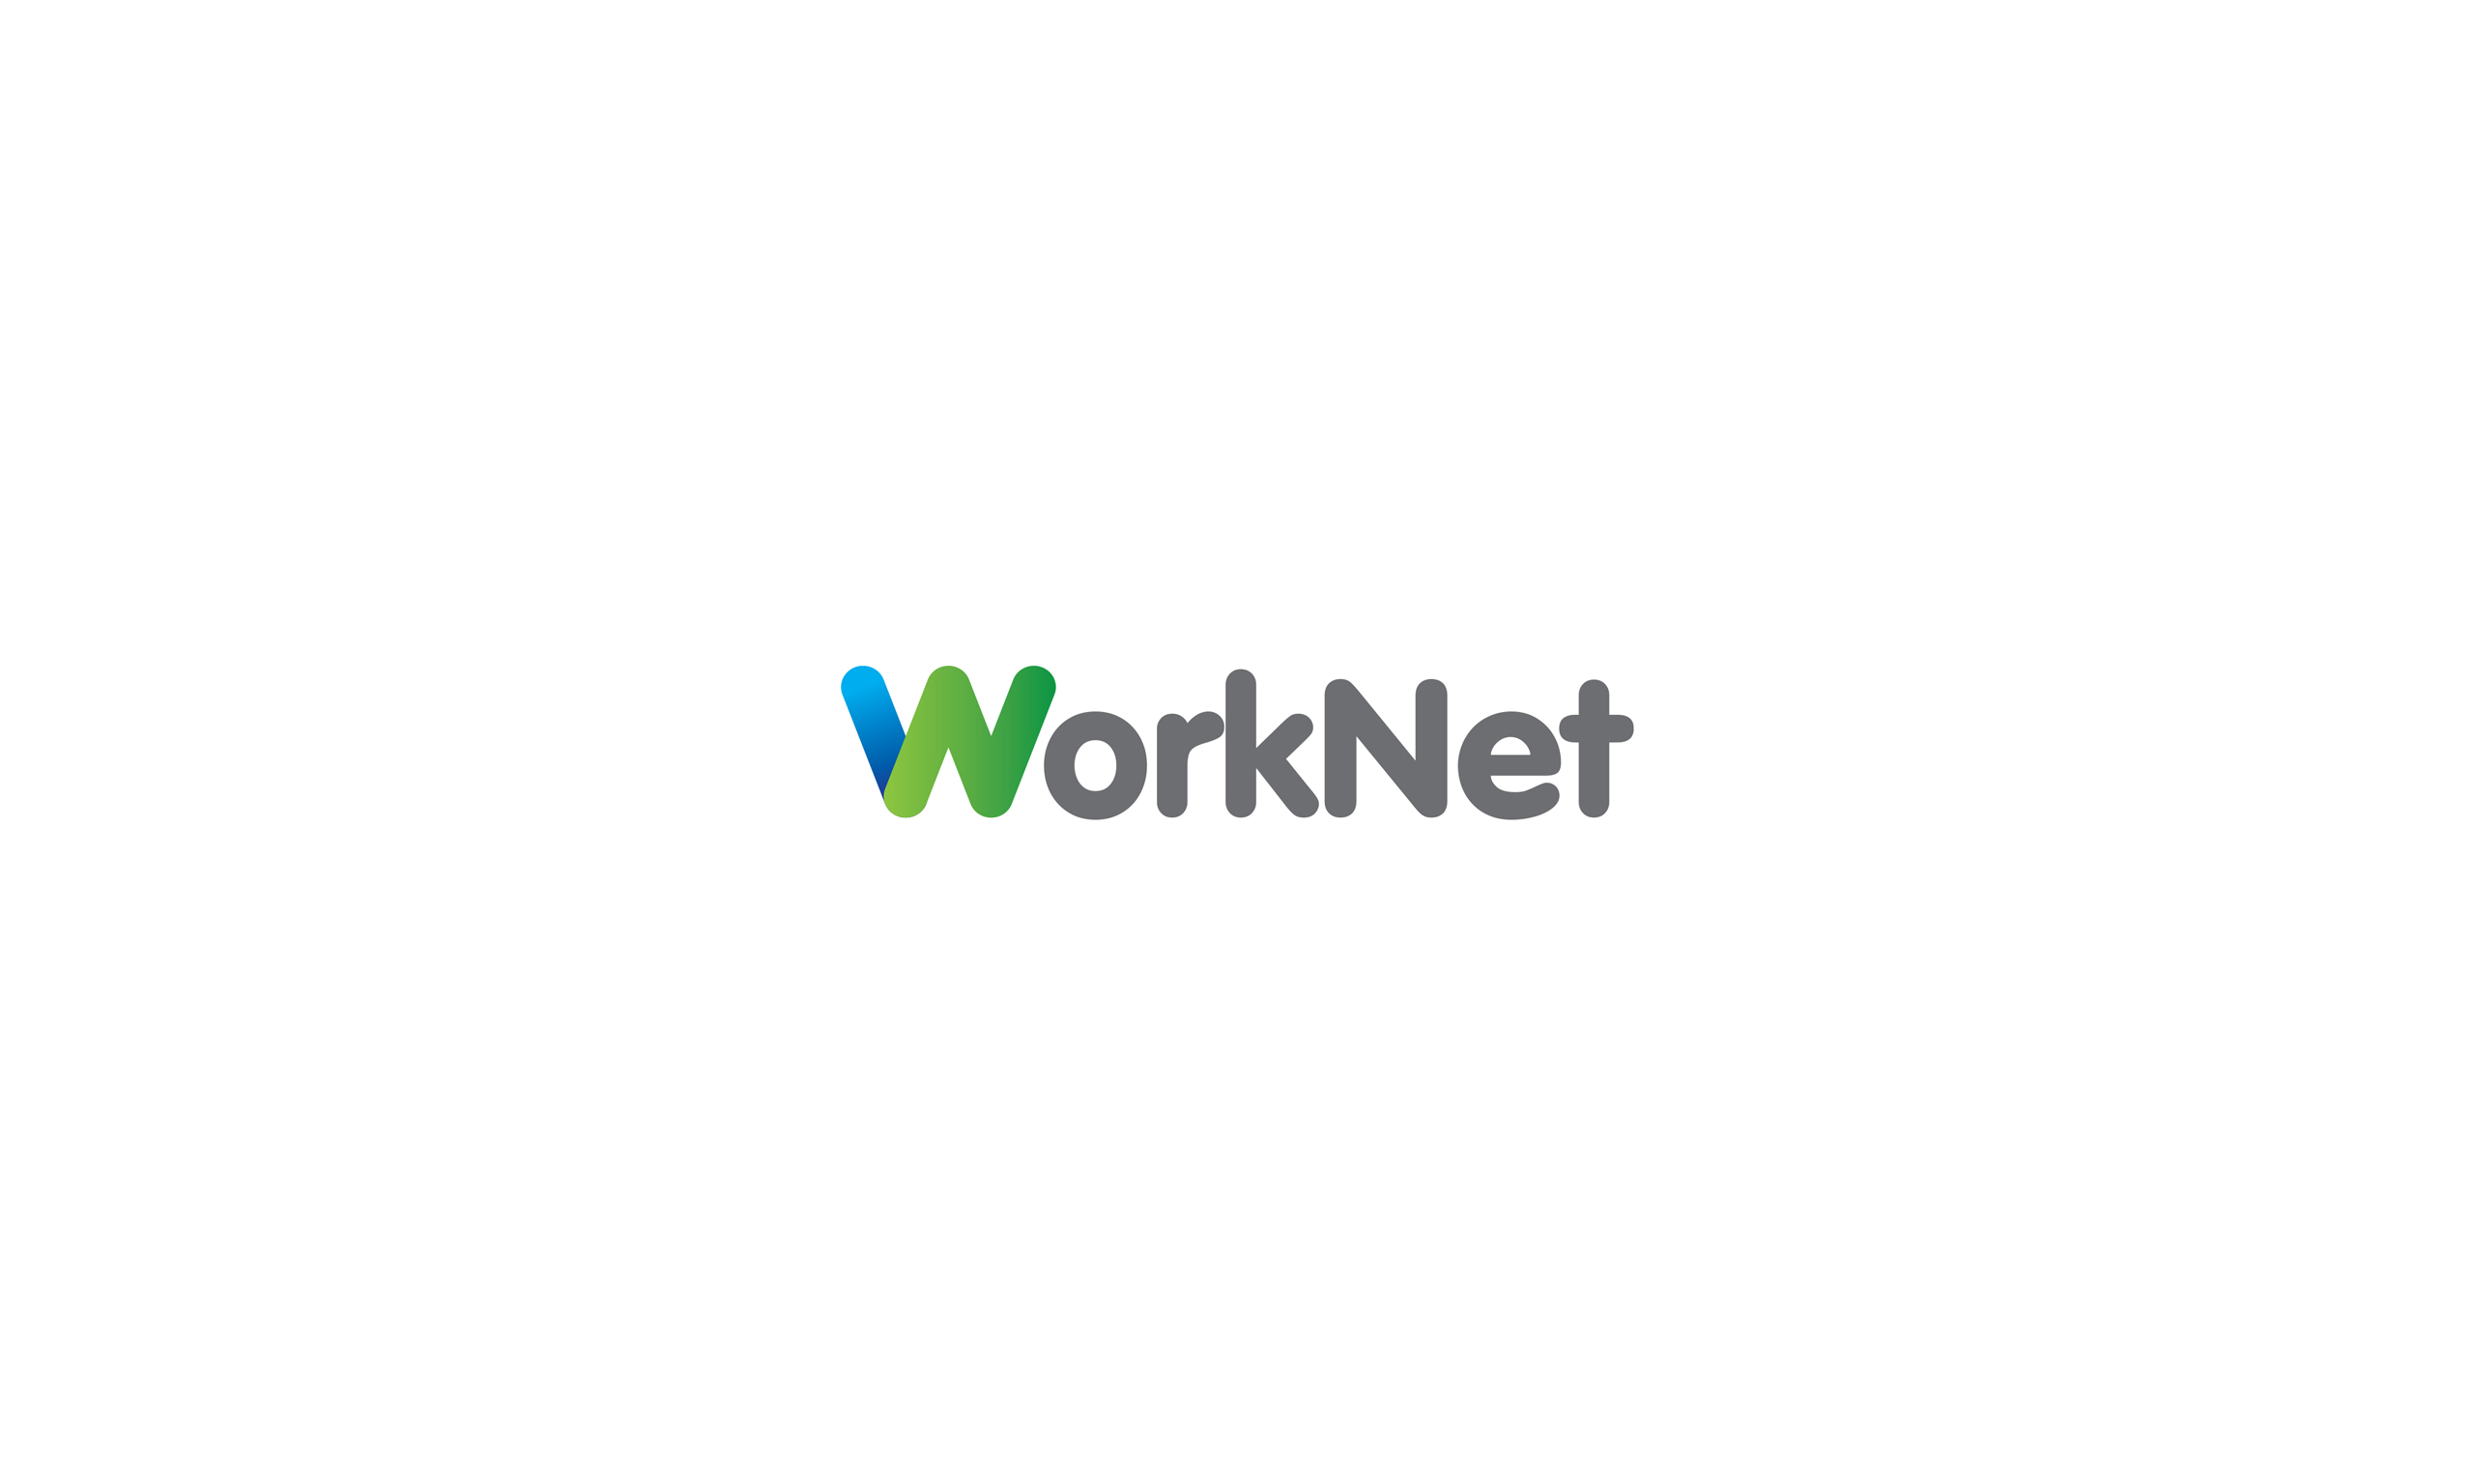 Worknet_Logo_Horizontal_WhiteBG_w2560_quality100